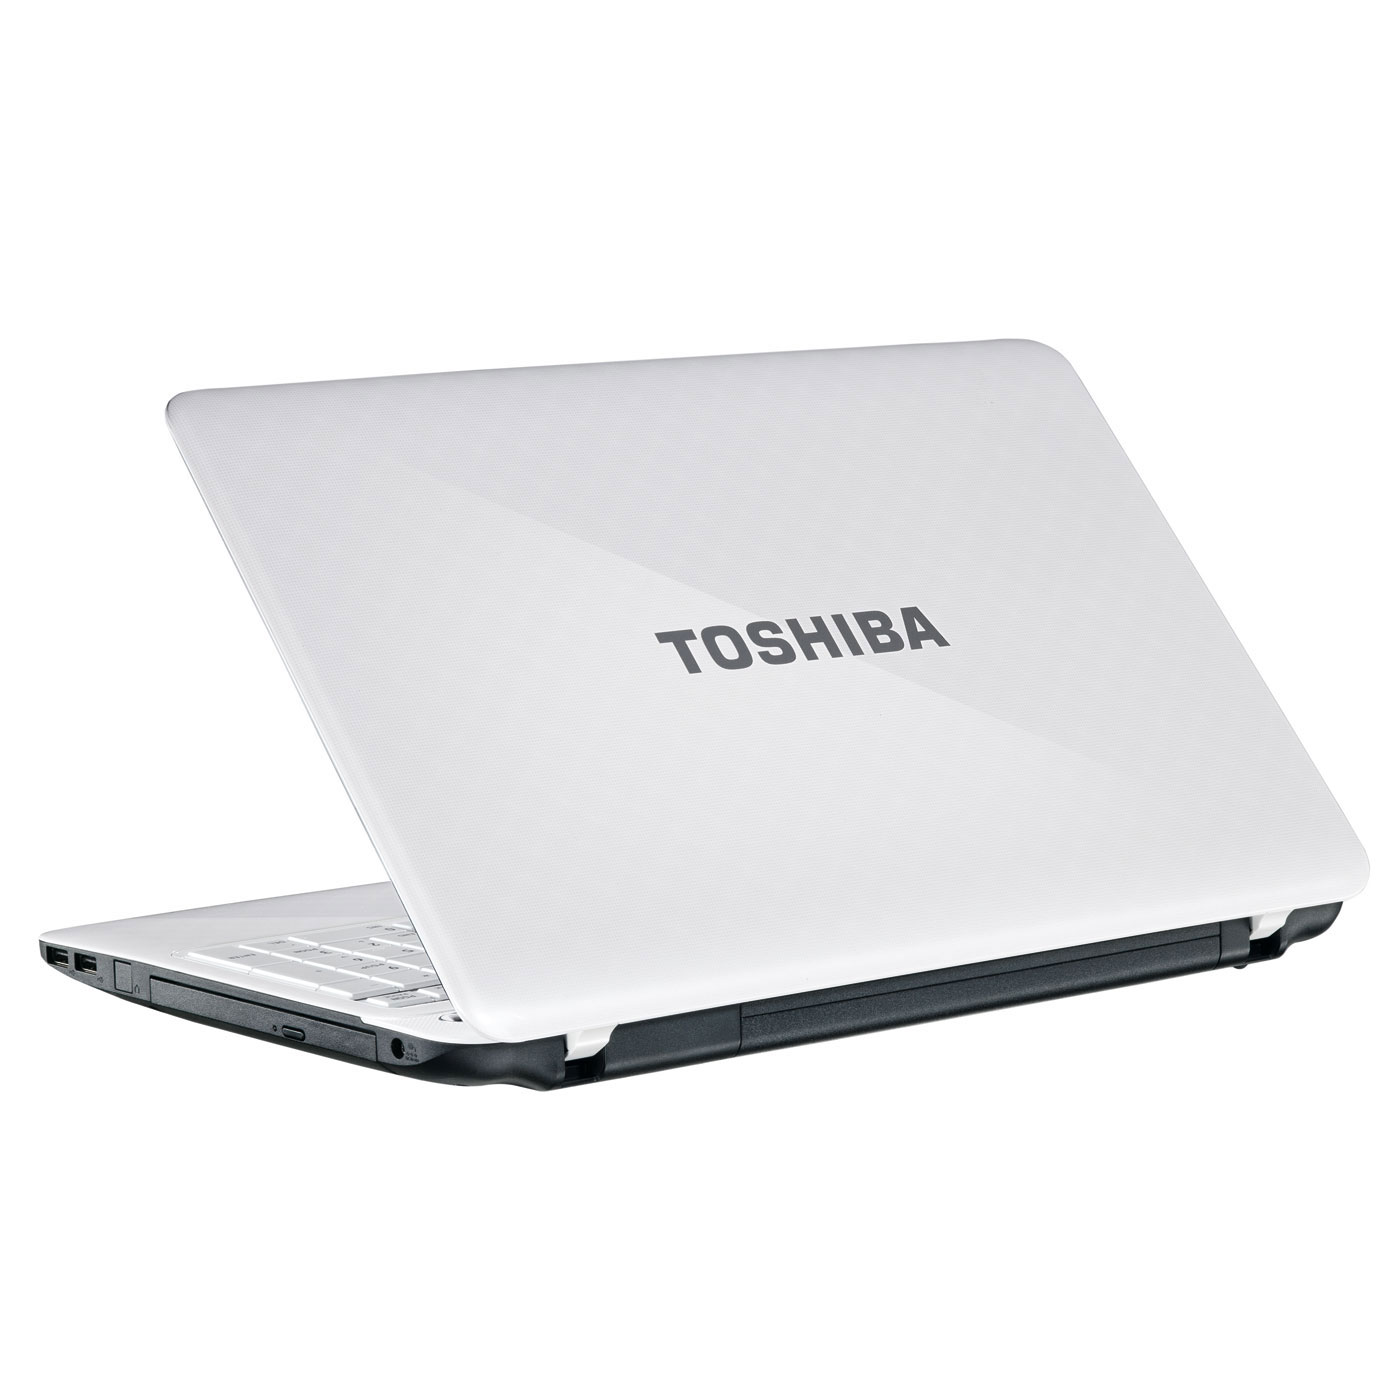 toshiba satellite l755 1gd blanc psk2ye 0j500yfr achat. Black Bedroom Furniture Sets. Home Design Ideas